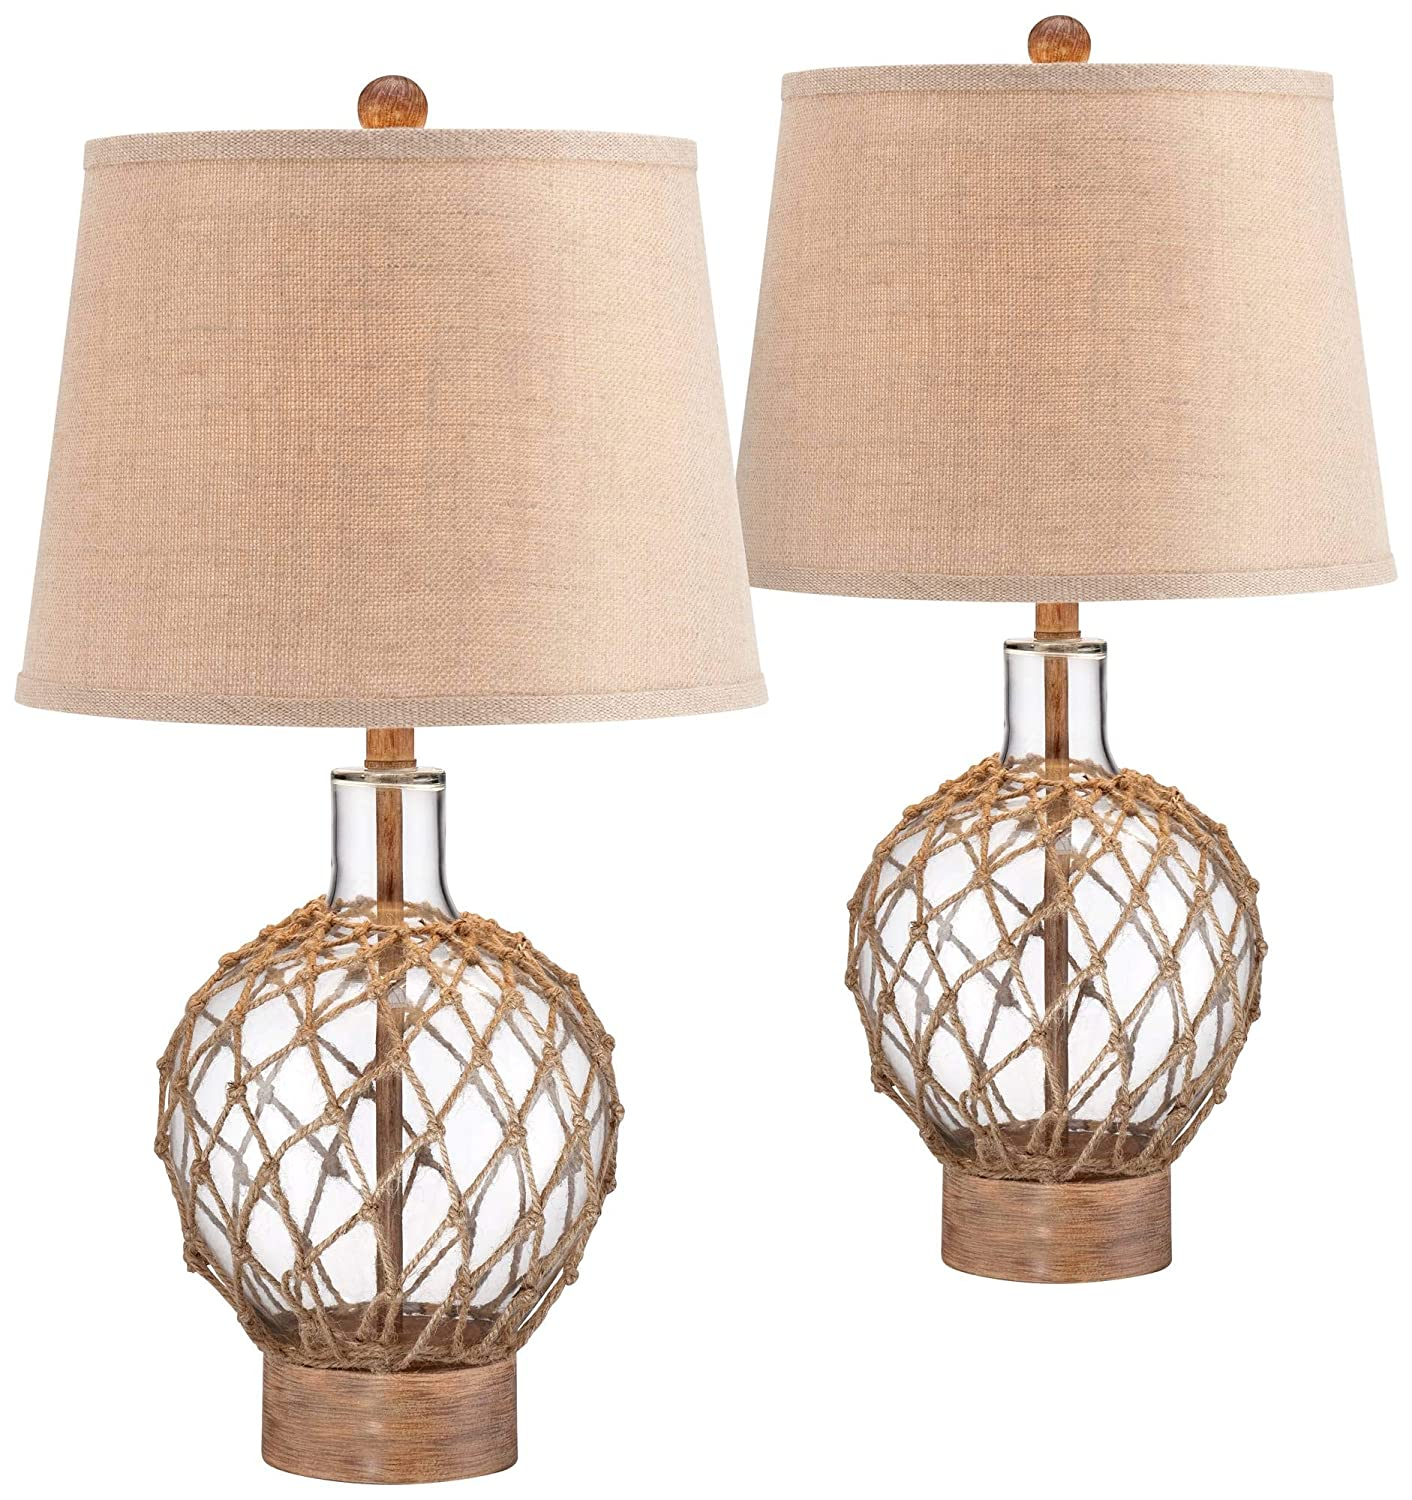 Coastal Table Lamps Set of 2 Rope and Clear Glass Jug Burlap Drum Shade for Living Room Family Bedroom Nightstand - 360 Lighting